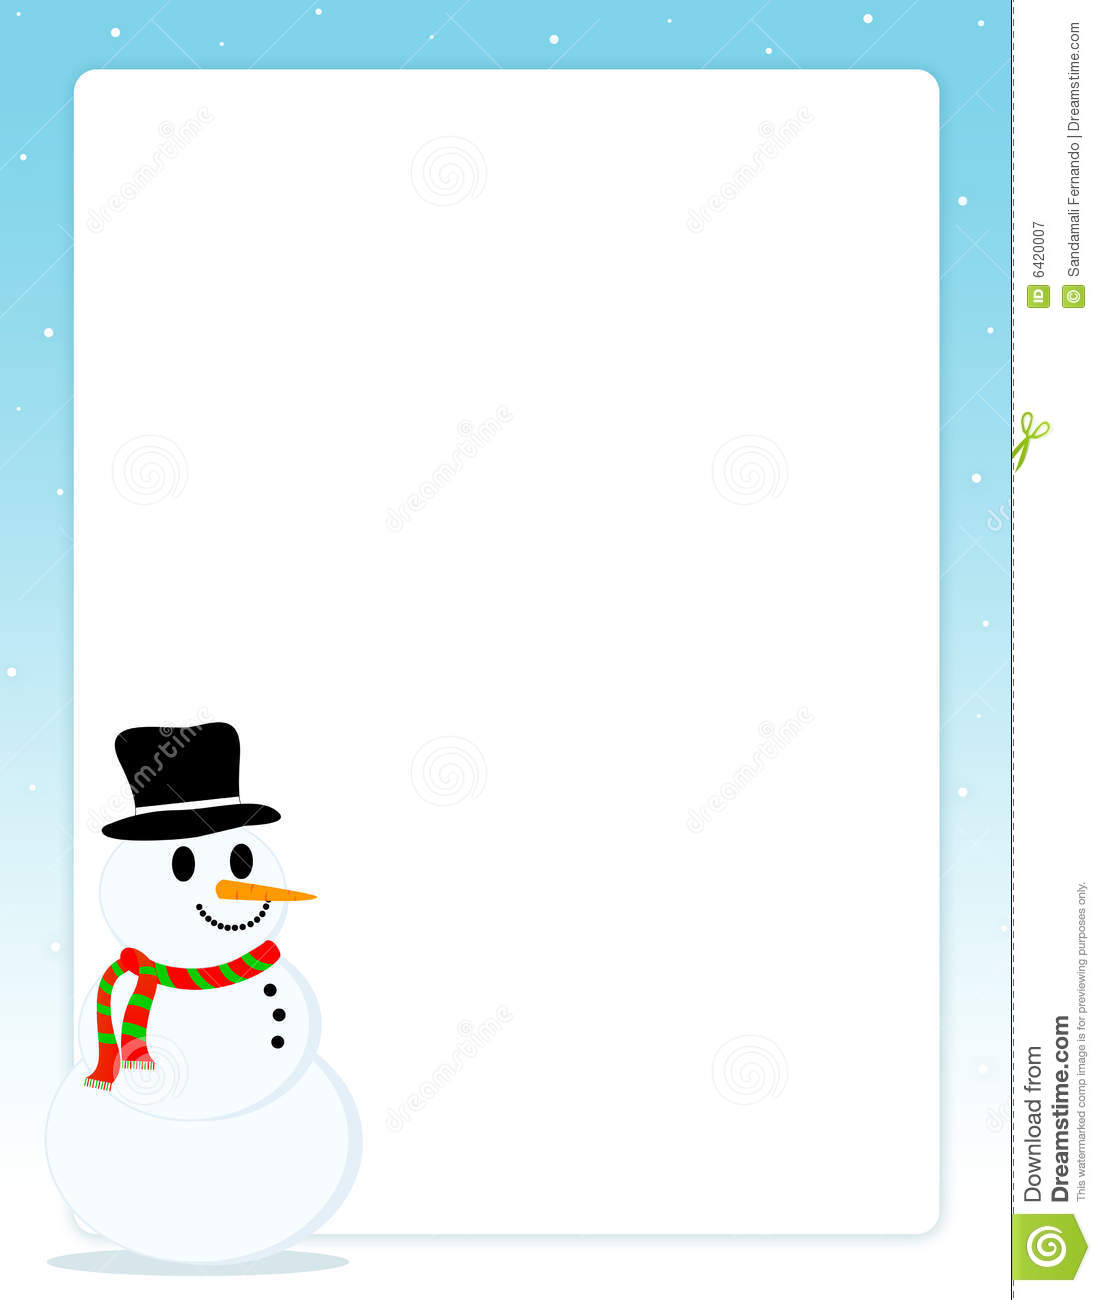 Christmas Border With Snowman Royalty Free Stock Photography - Image ...